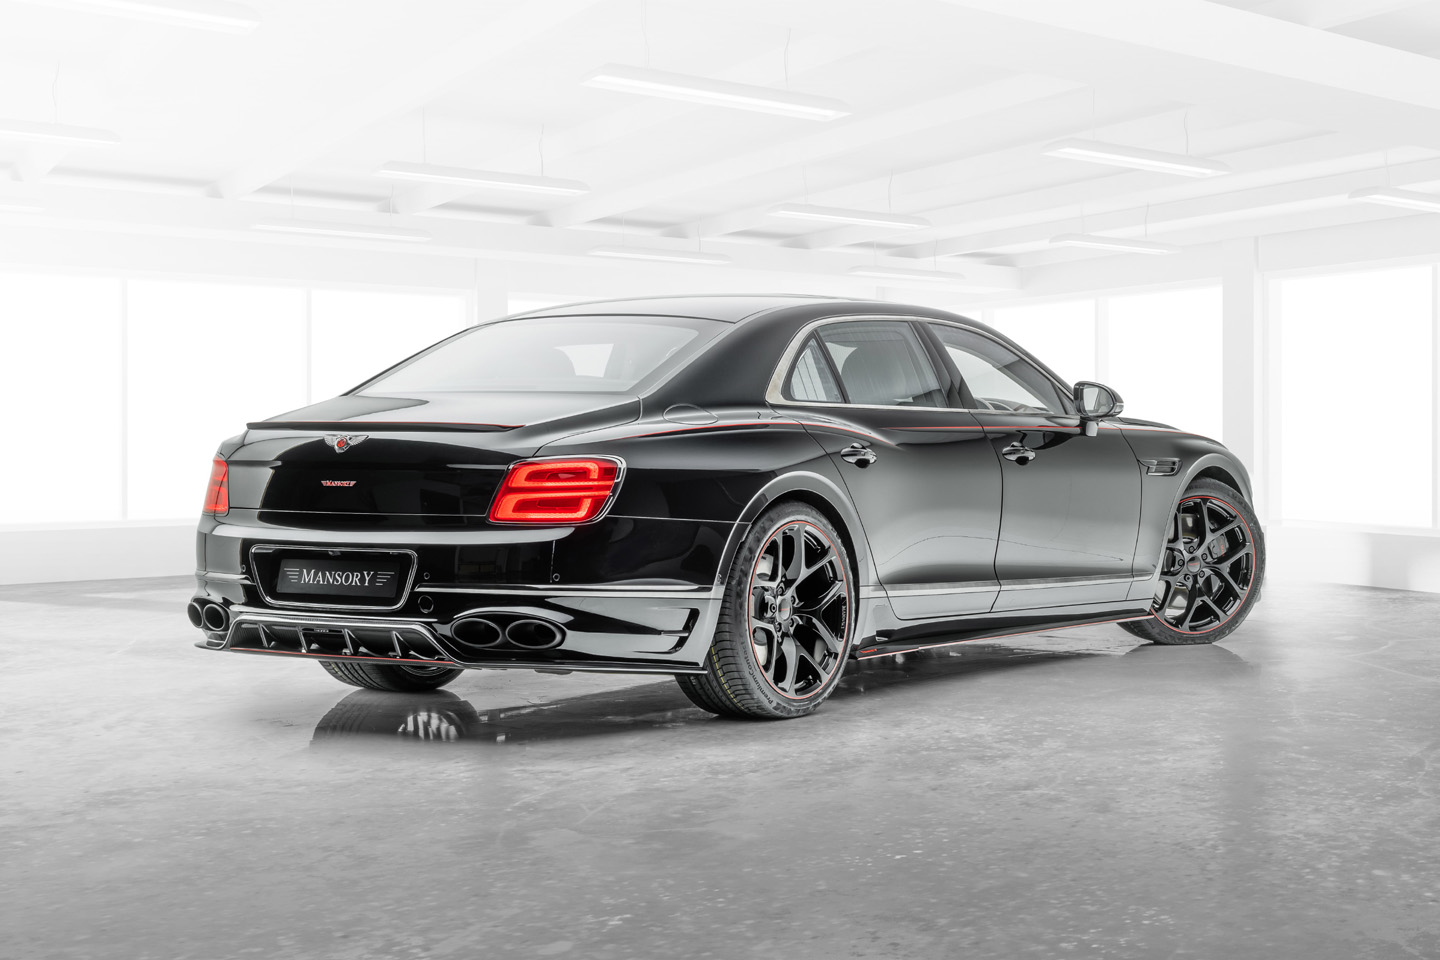 Mansory Bentley Flying Spur 2020 4